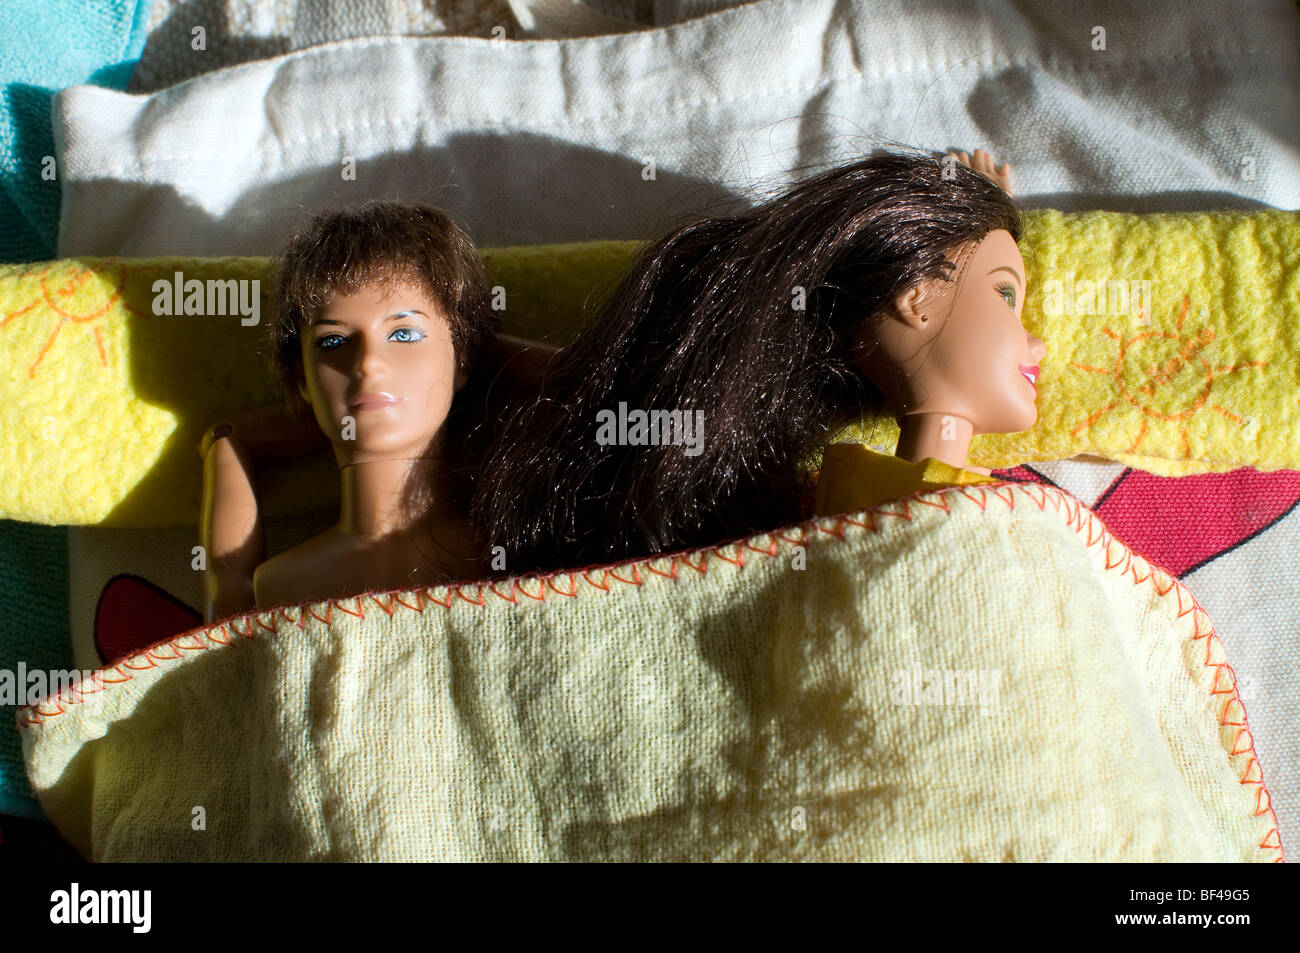 sexualization of children in the media,Relationship Issues acted by dolls - Stock Image